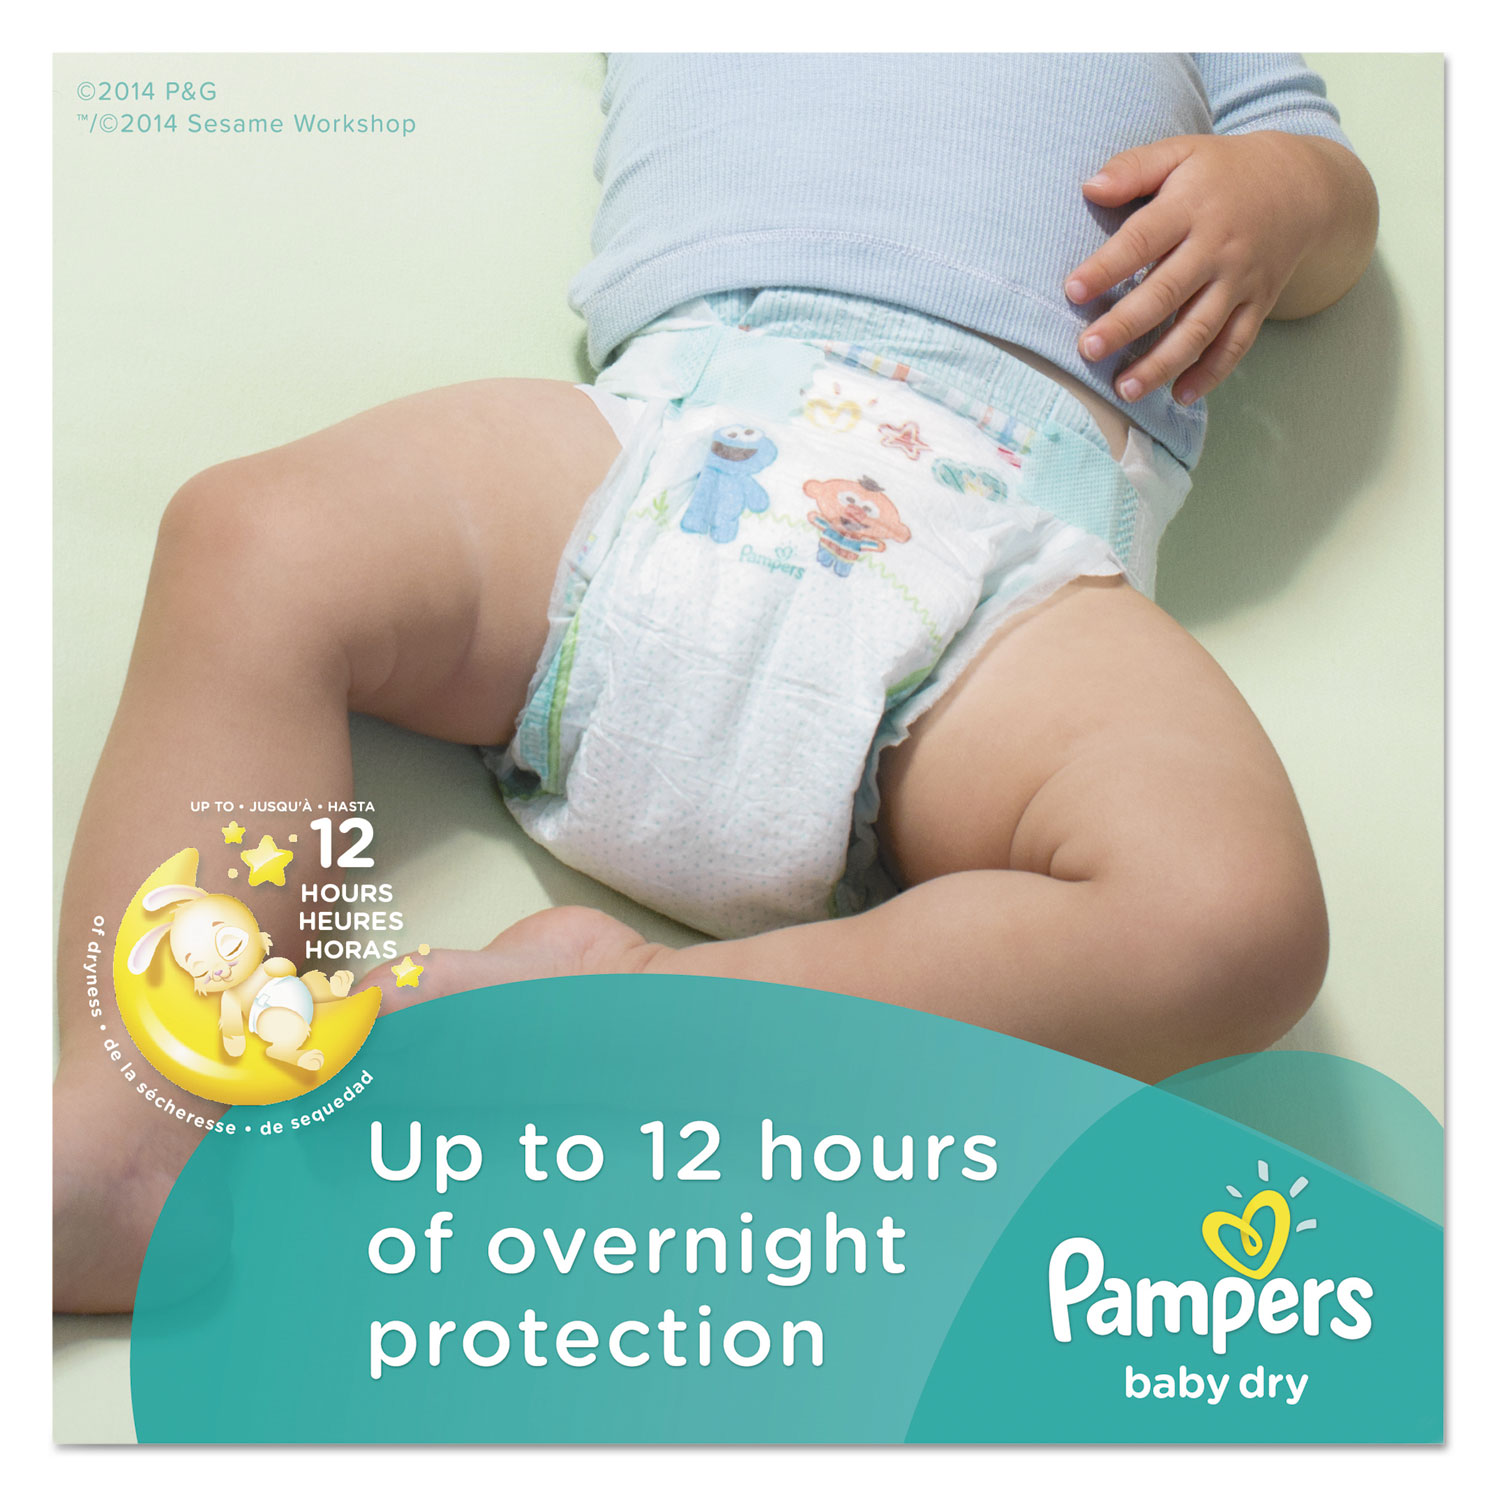 Baby Dry Diapers, Size 3: 16 to 28 lbs, 160/Carton